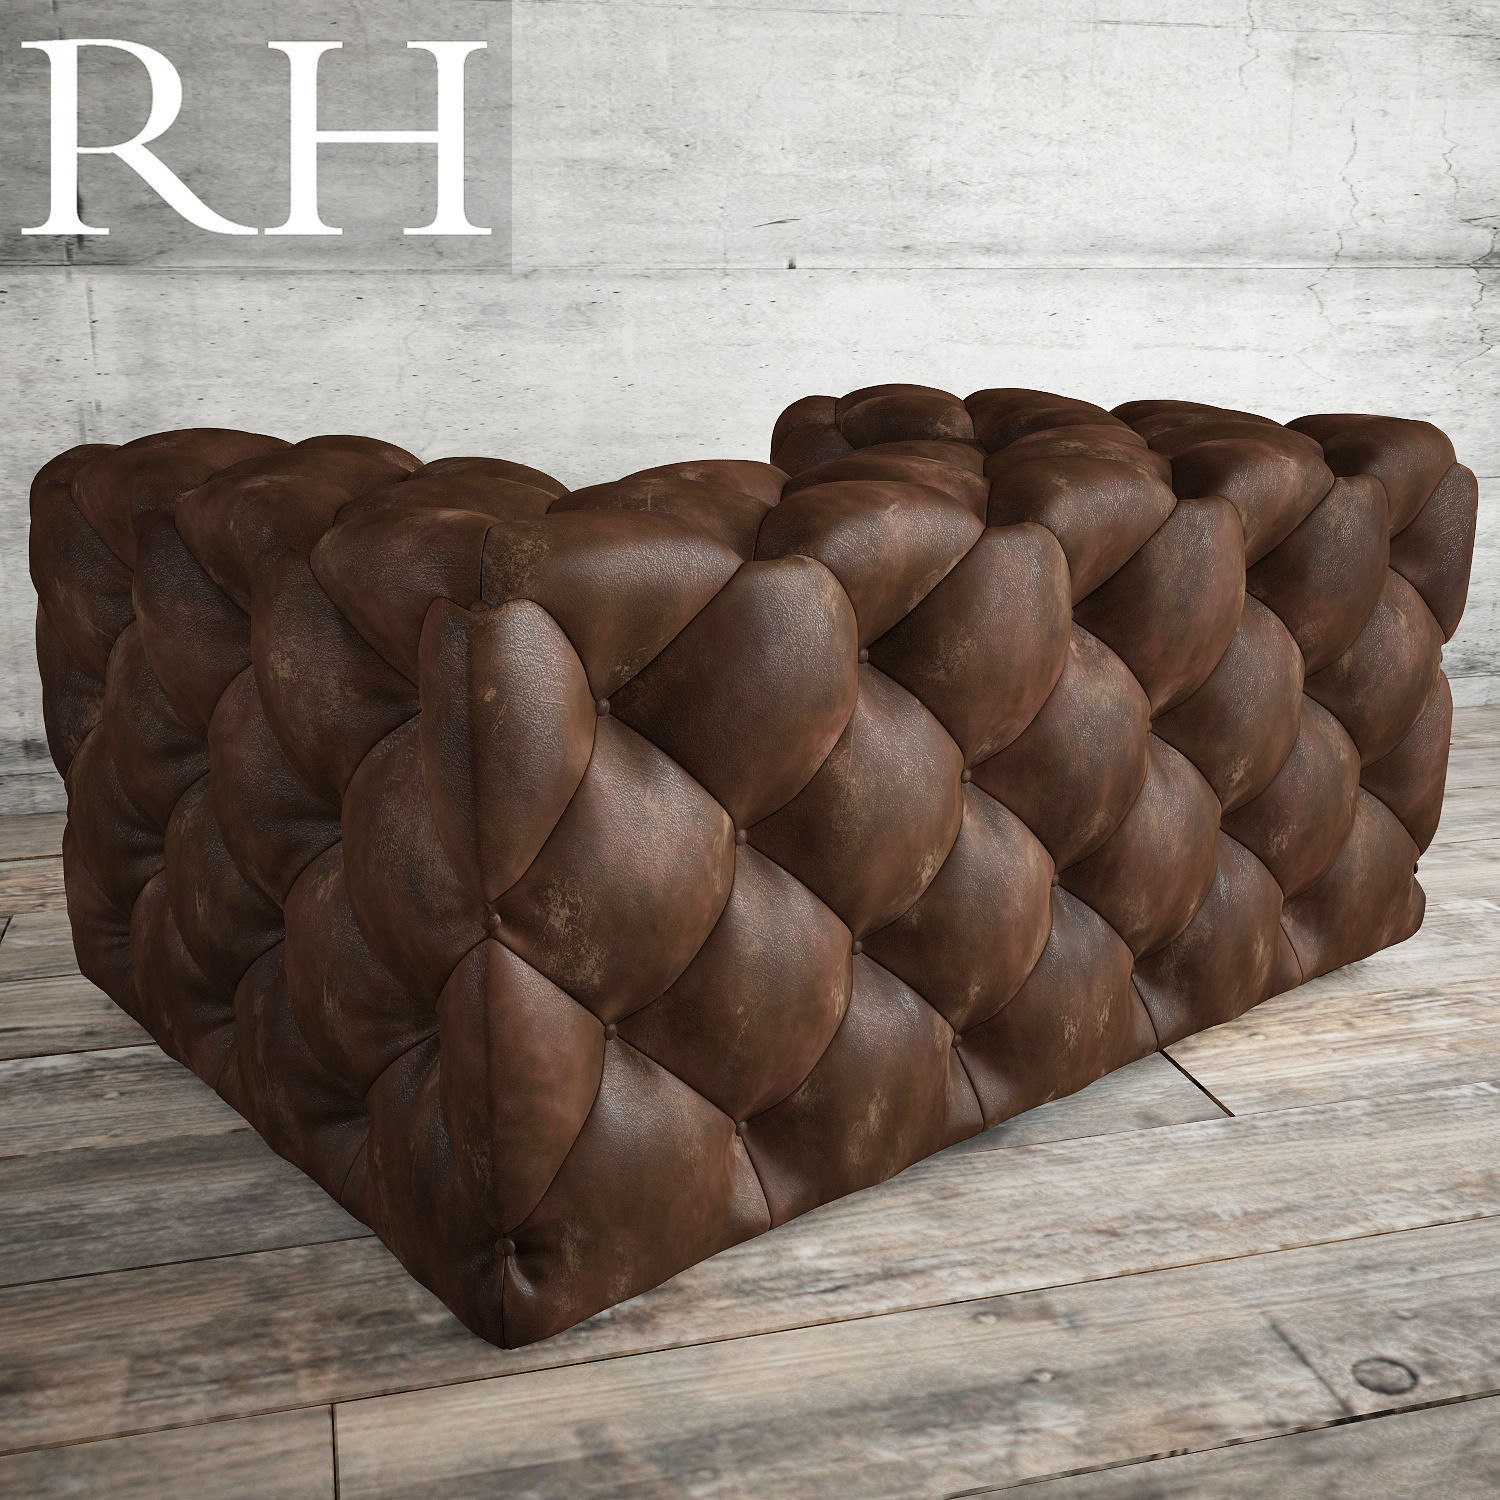 SOHO TUFTED LEATHER CHAIR 3D model